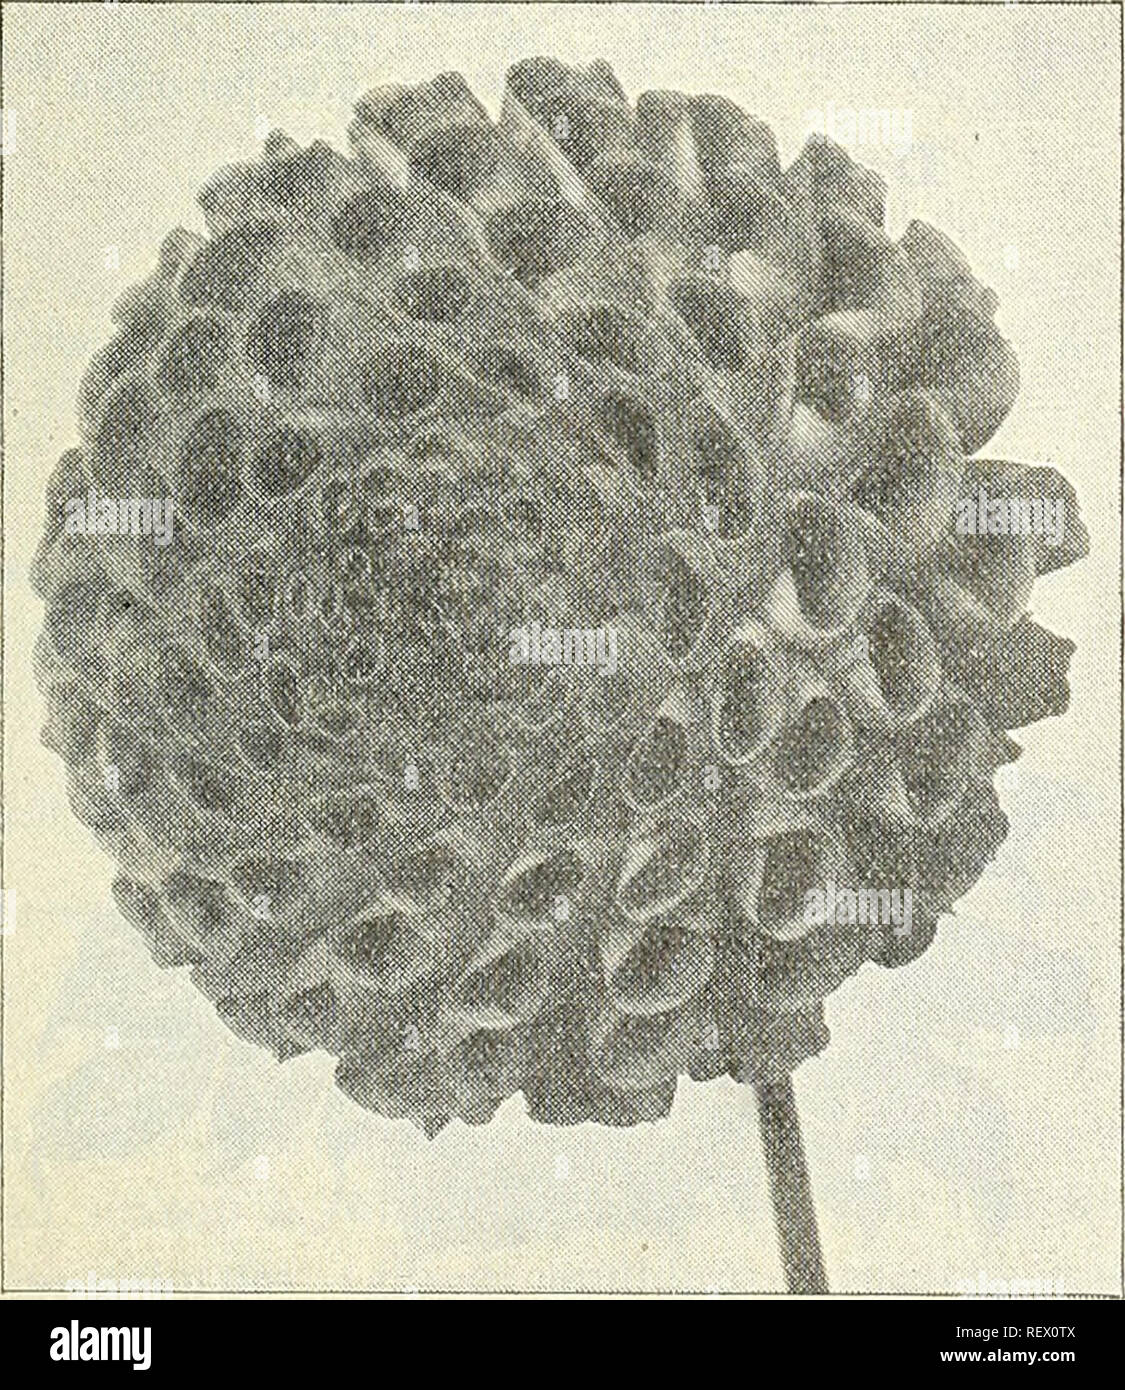 . Dreer's wholesale price list : tools, fertilizers, insecticides, sundries, etc. Bulbs (Plants) Catalogs; Flowers Seeds Catalogs; Vegetables Seeds Catalogs; Nurseries (Horticulture) Catalogs. WHOLESALE PRICE LIST. 11 Twenty Choice Decorative Cactus Dahlias. Admiral Dewey. Brilliant imperial purple of fine form. Black Beauty. A grand deep maroon. Bronze Beauty. Reddish bronze, large flower. Celestine. Yellow suffused with orange. Countess of Pembroke. Soft, delicate rose. Clifford W. Brutton. A superb yellow. Oloriosa. Deep bright red, shaded scarlet. Iridescent. A brilliant iridescent red. Ma - Stock Image